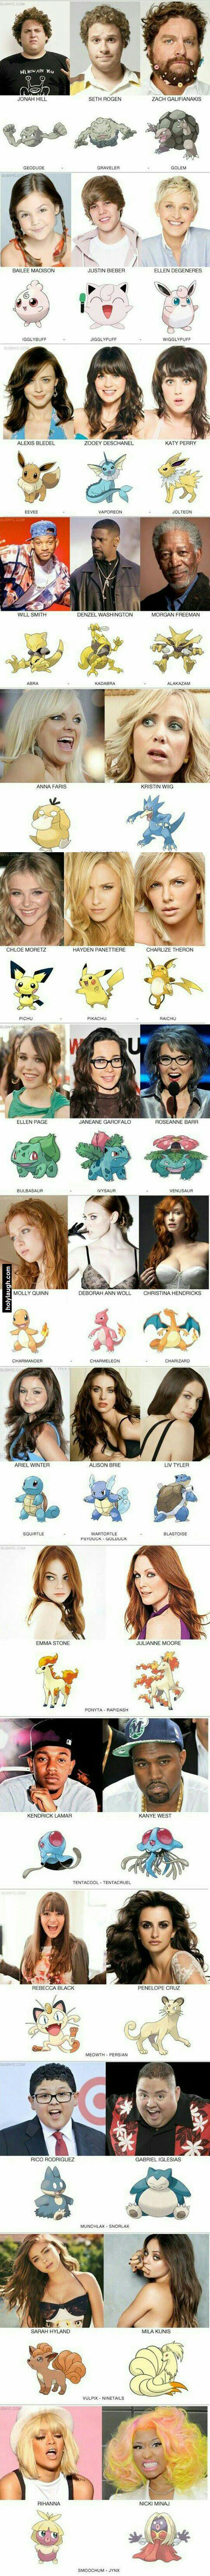 celebrities as pokemons